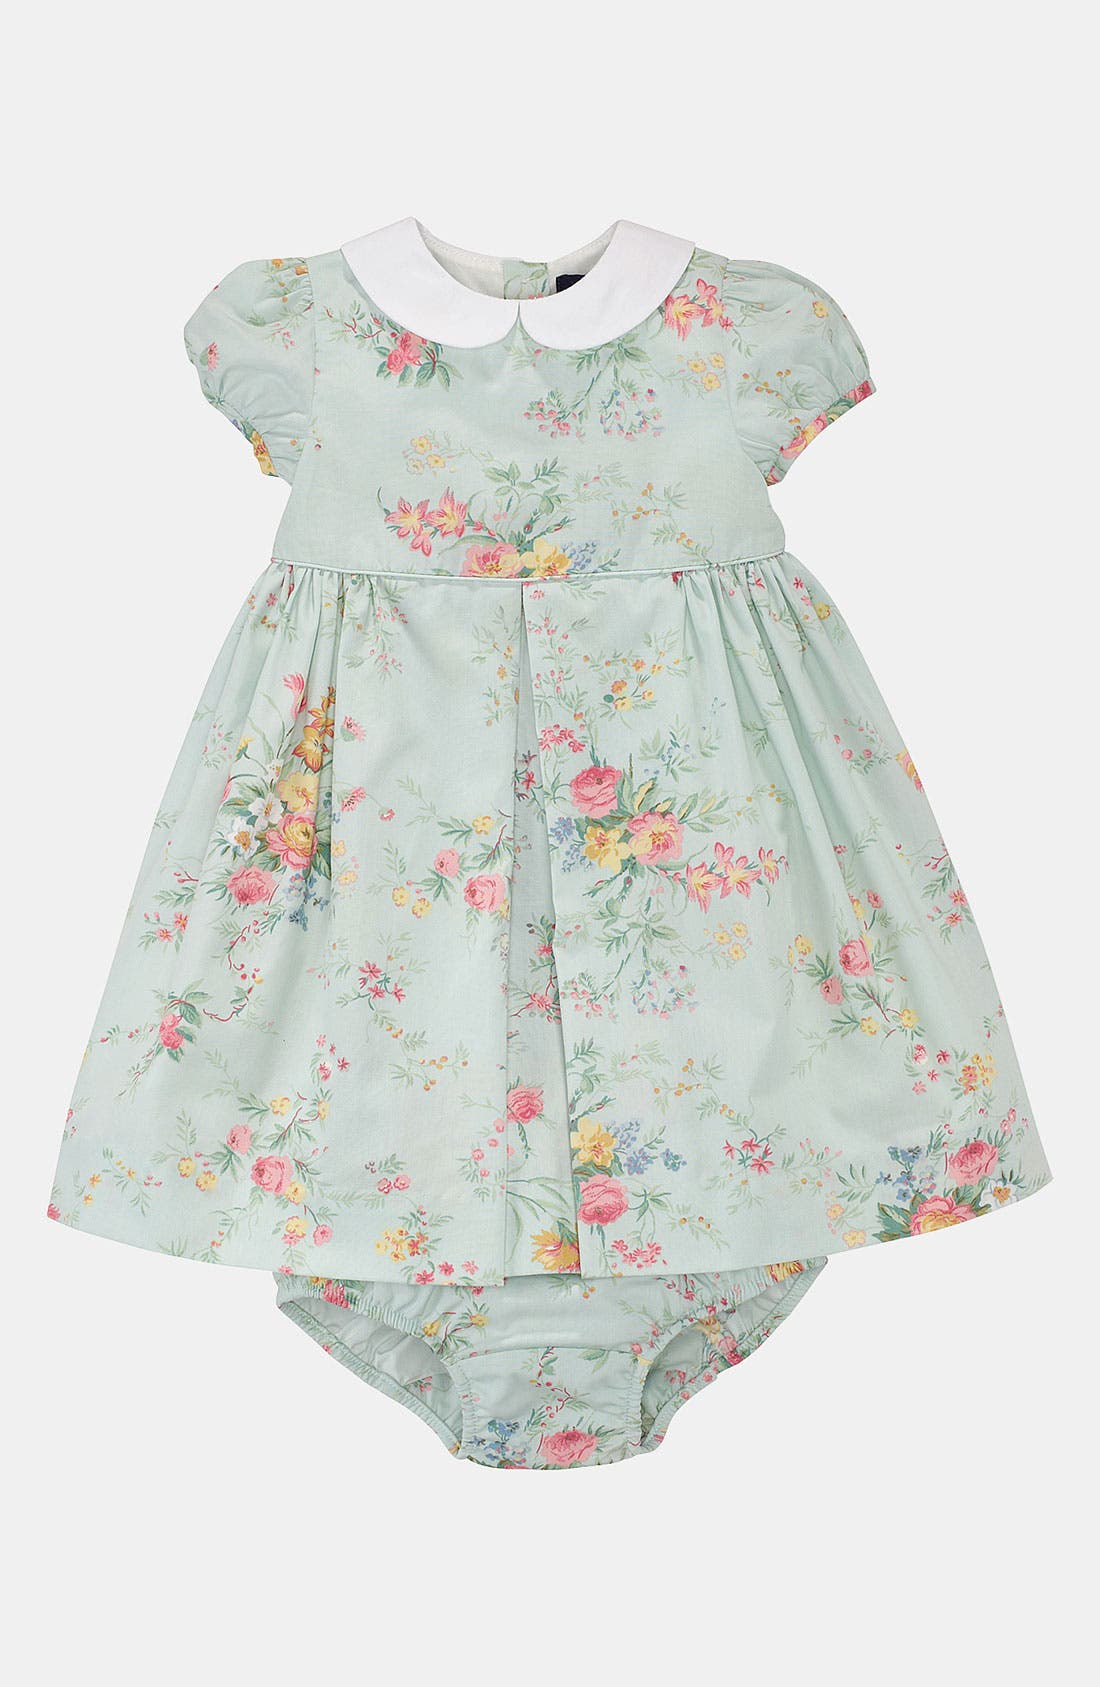 Alternate Image 1 Selected - Ralph Lauren Floral Dress & Bloomers (Infant)